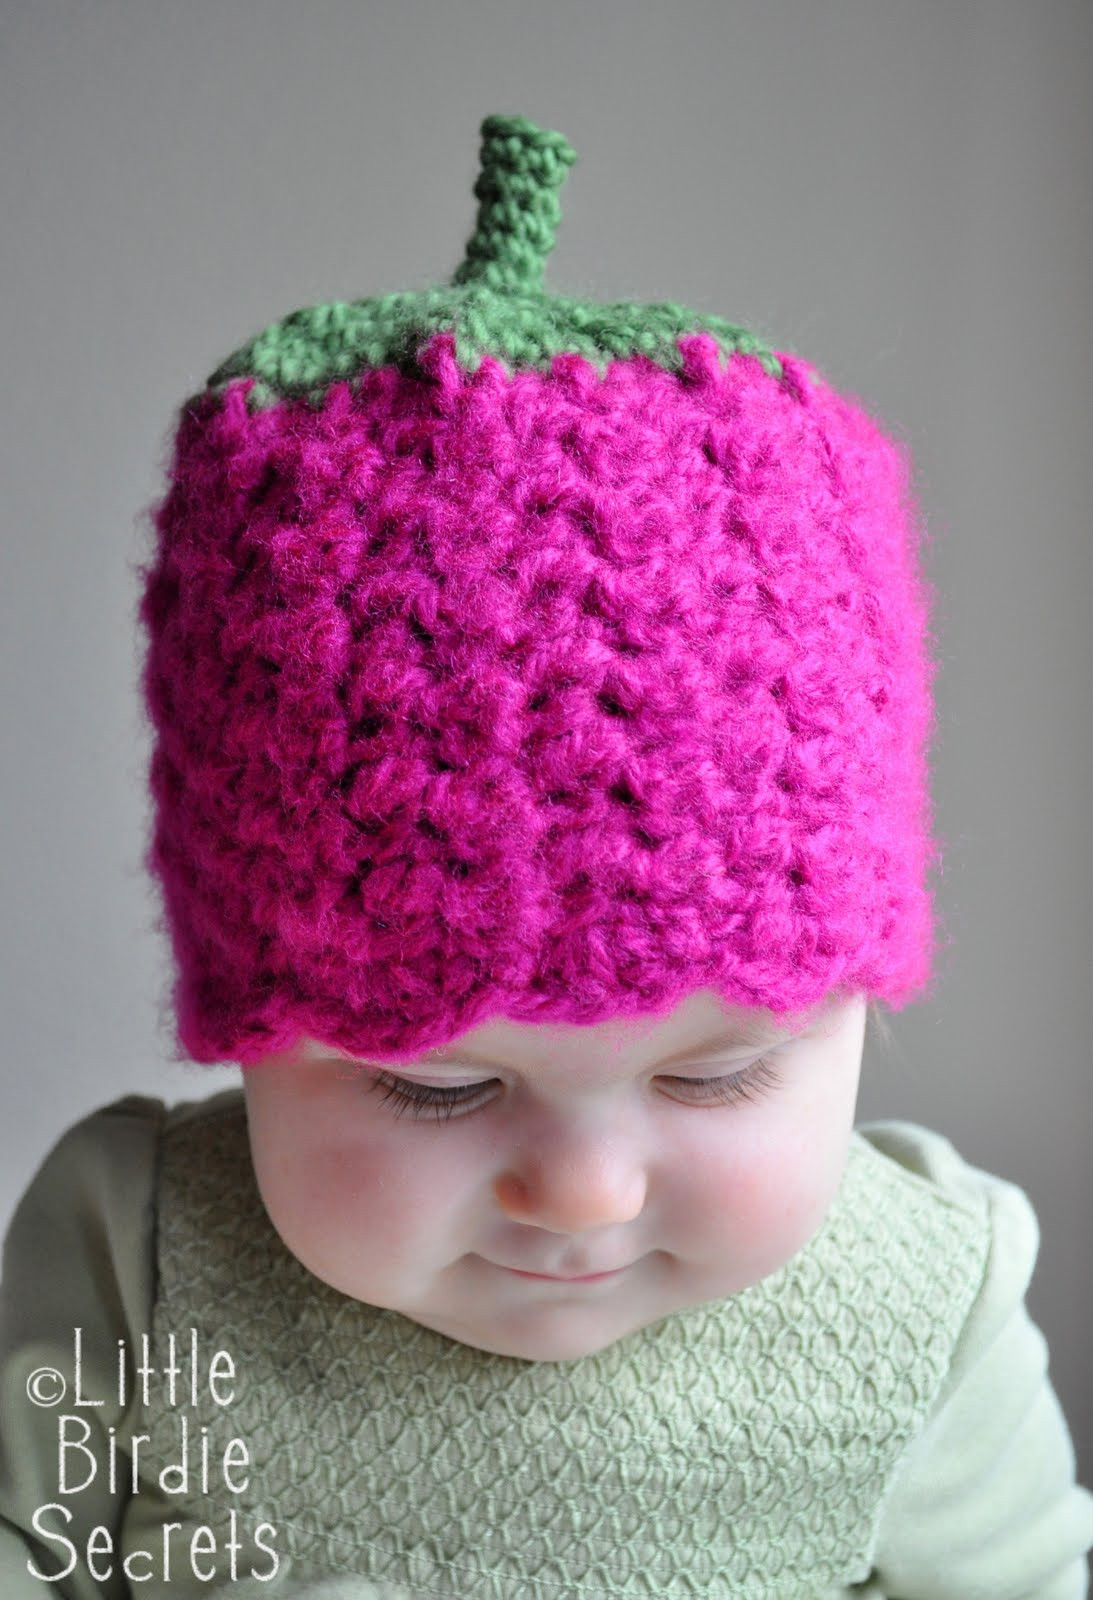 Free Crochet Hats Best Of Raspberry or Strawberry Free Crochet Pattern and A Of Incredible 43 Photos Free Crochet Hats